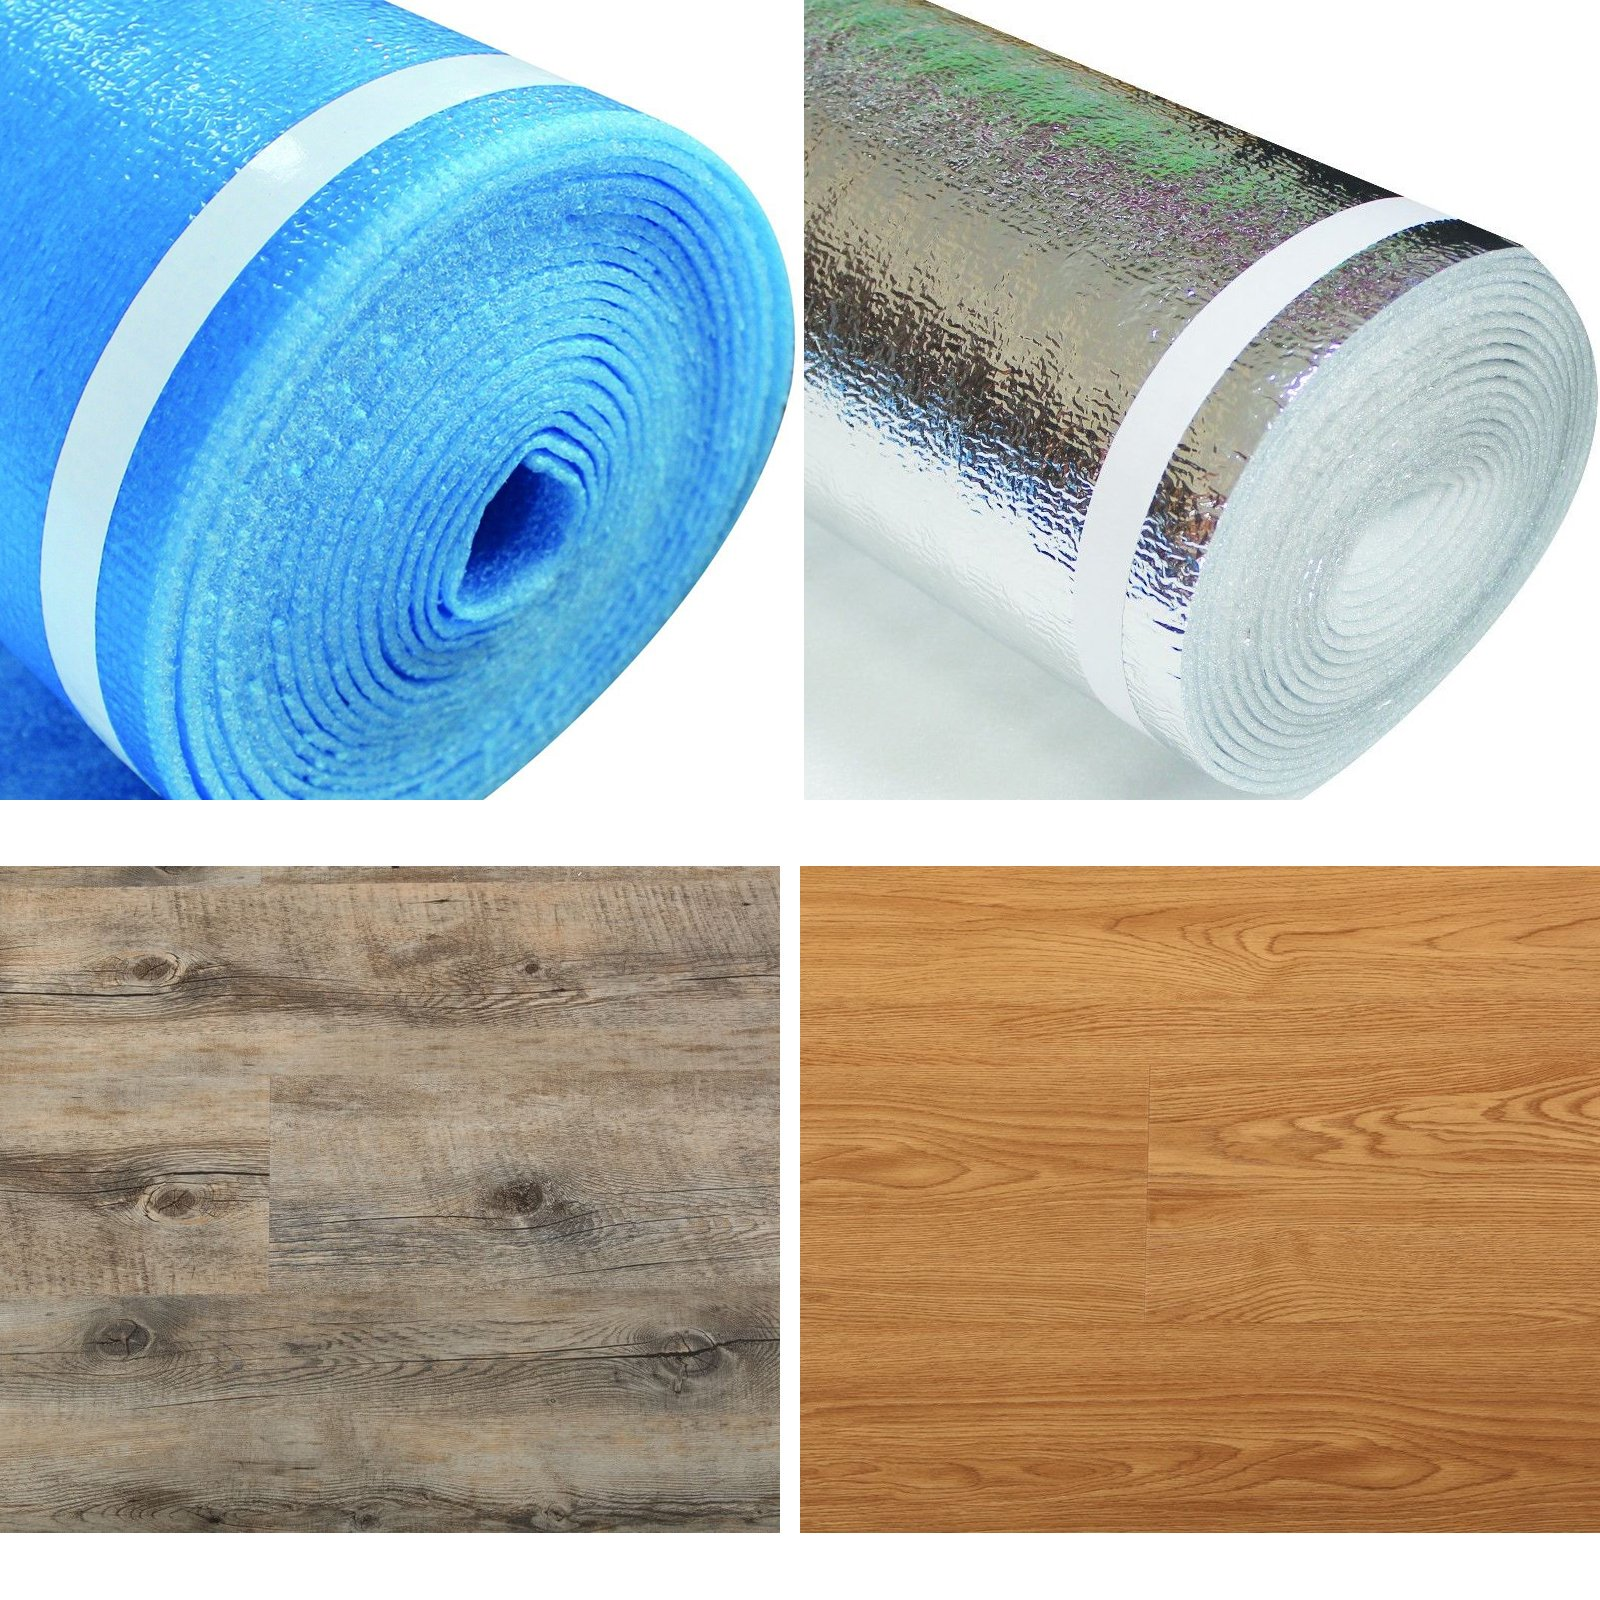 3in1-3mm Thick - 200sqft - Underlayment Foam with self-Sealing Lip and Tape - Laminate,Vinyl,WPC,Bamboo,Engineered Floor